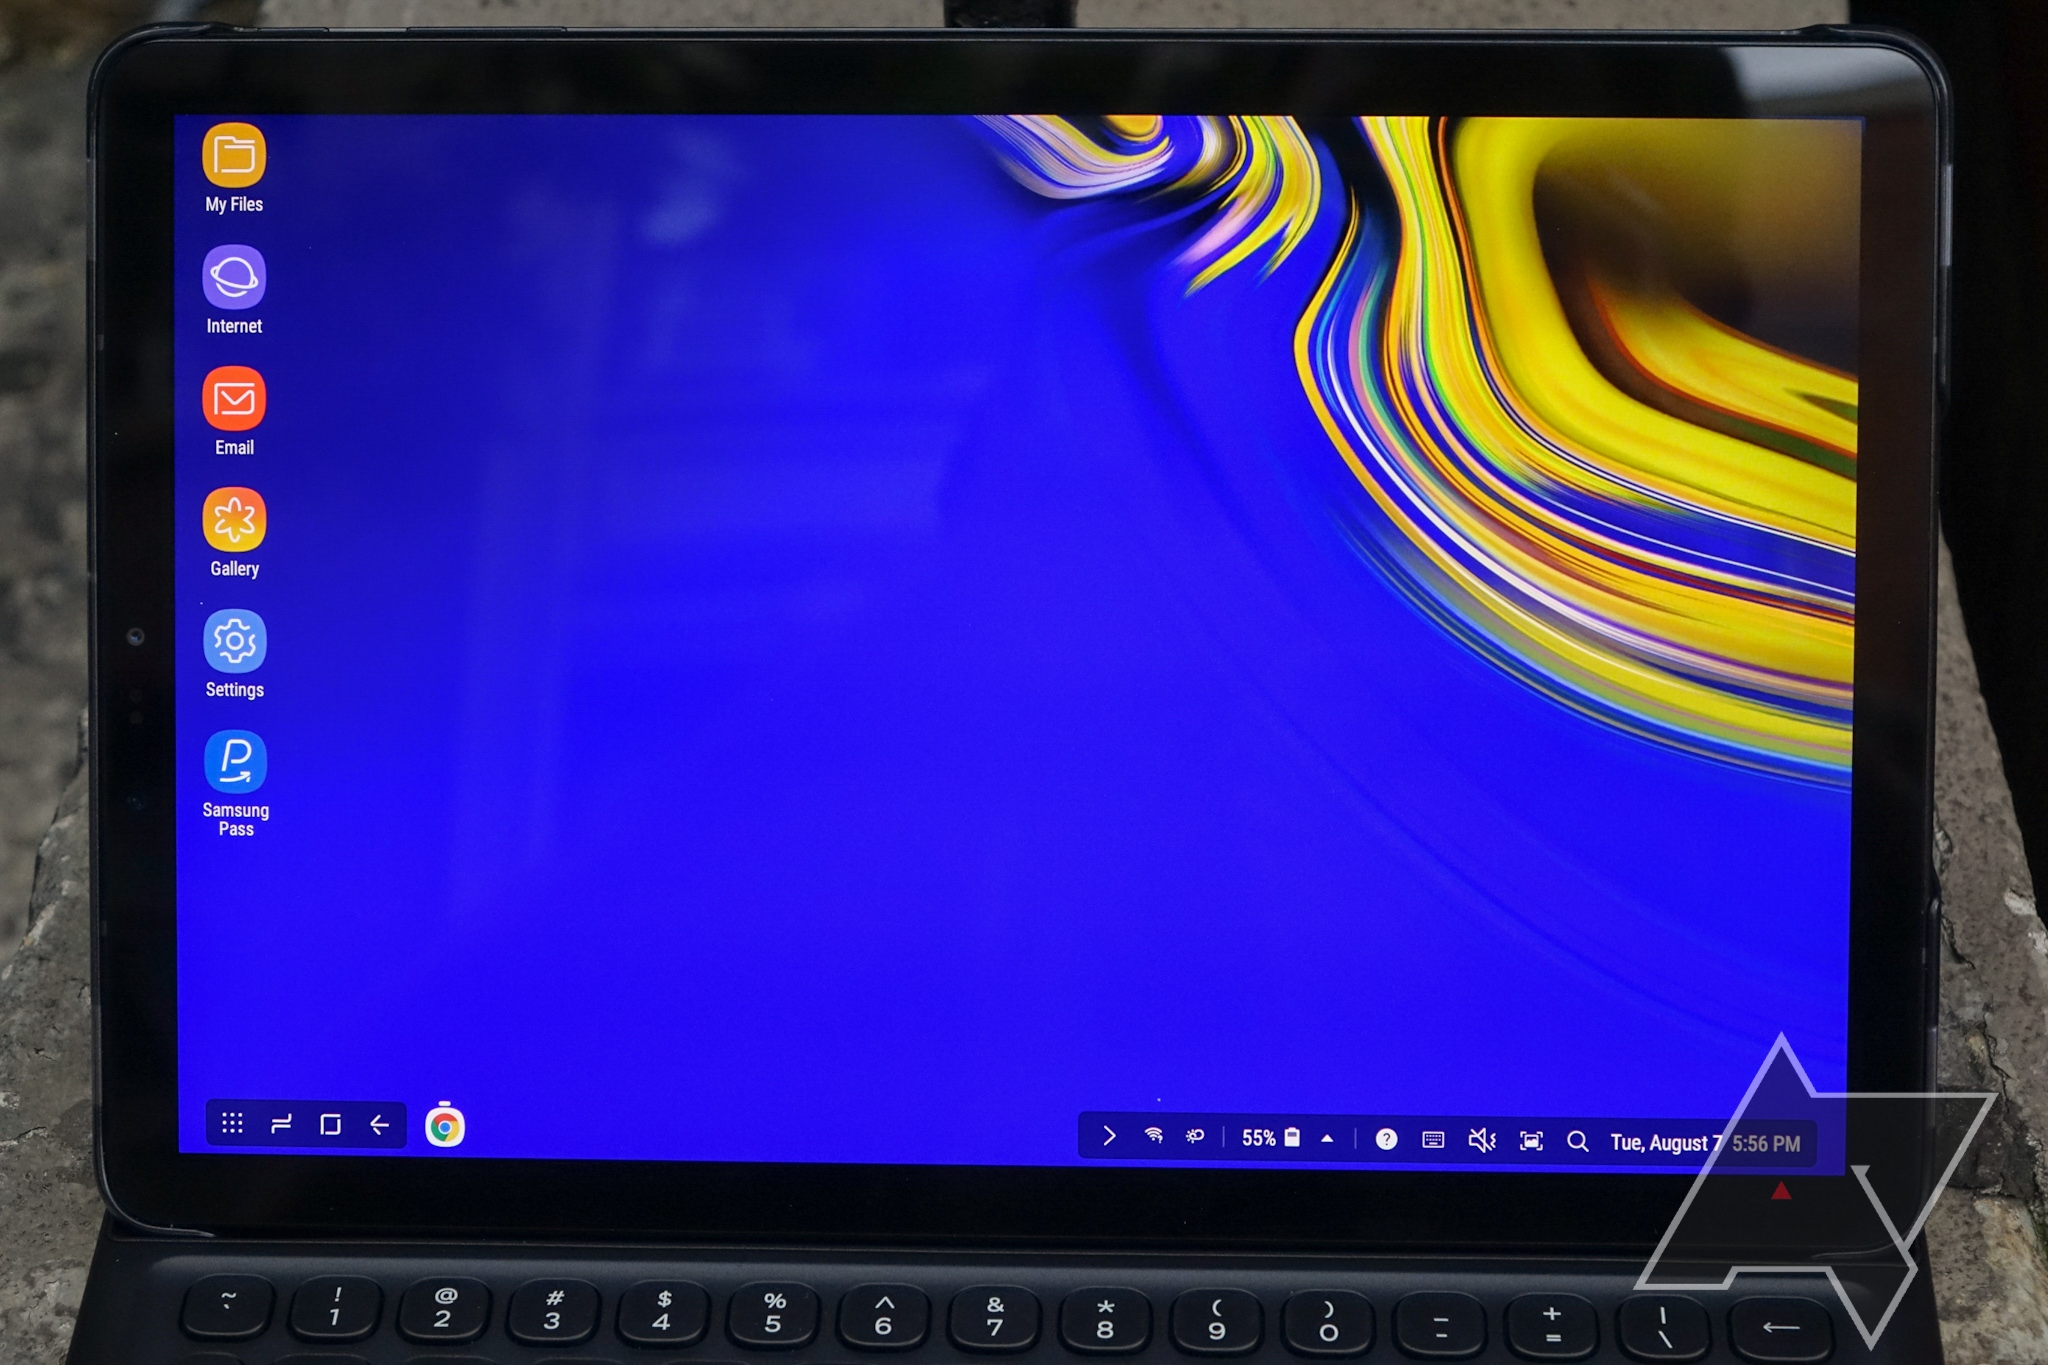 Galaxy Tab S4 review: An overpriced tablet that is also a